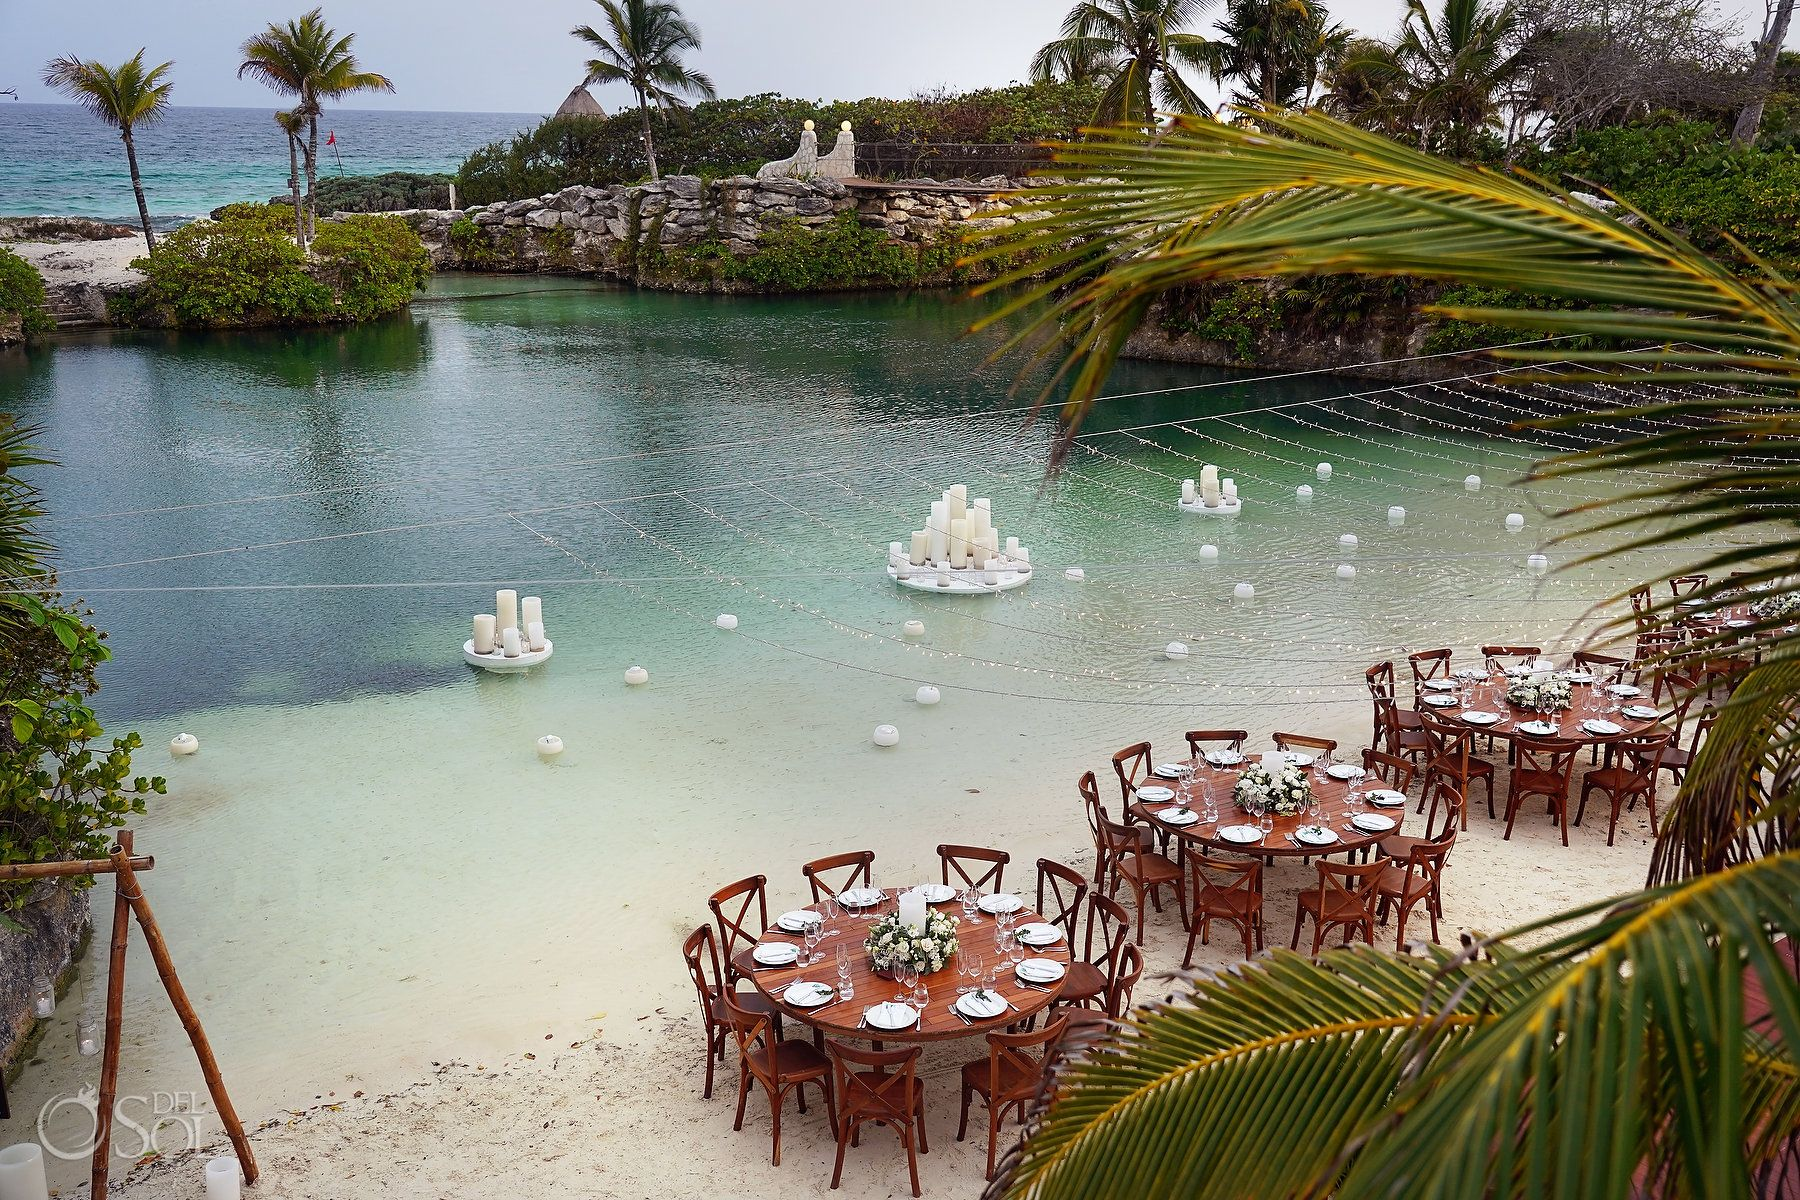 Hotel Xcaret Mexico Weddings Del Sol Photography Mexico Wedding Wedding Venues Beach Destination Wedding Venues